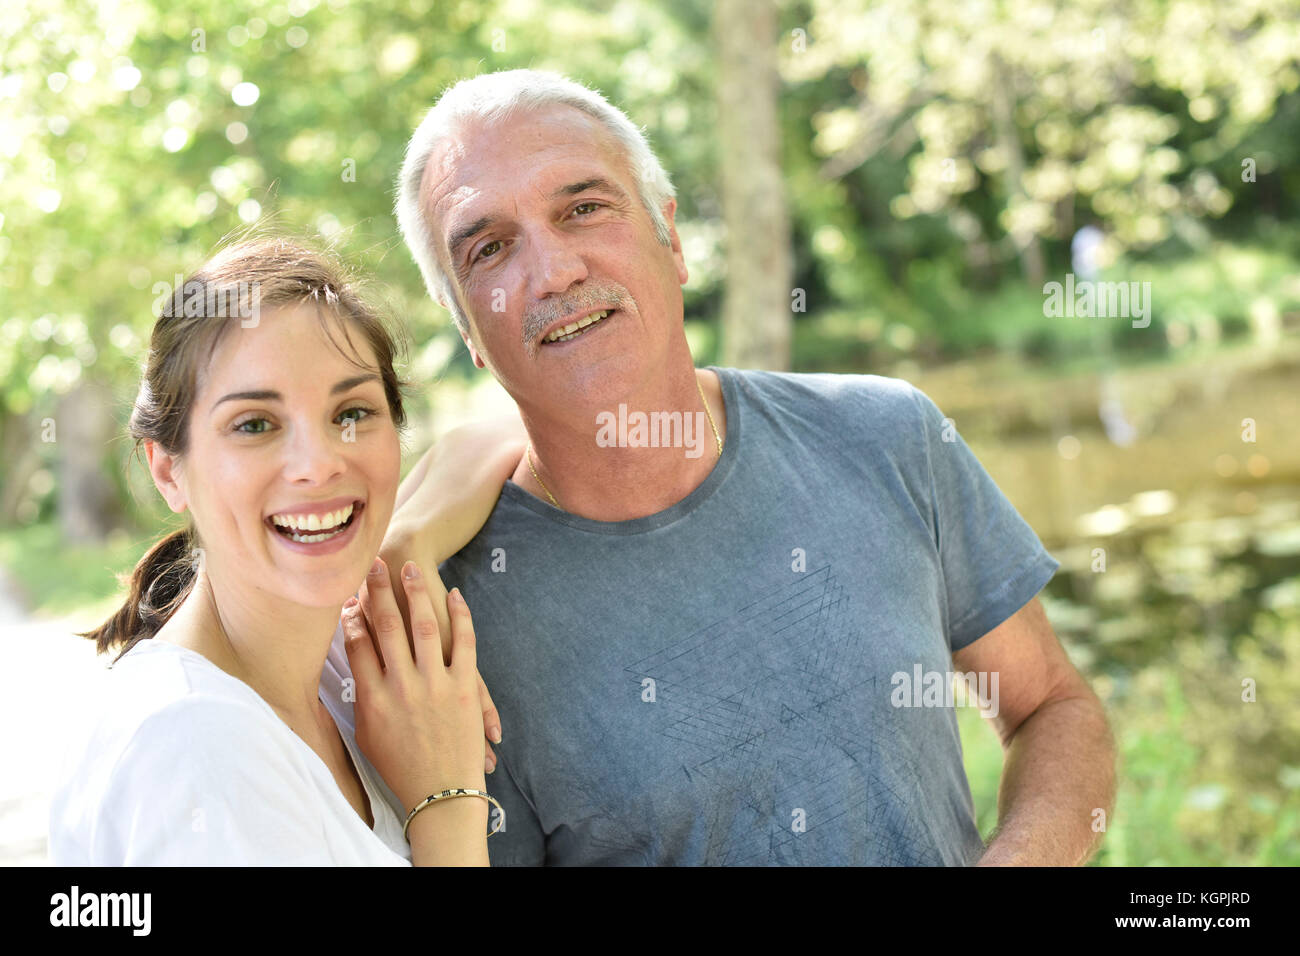 Portrait of man with daughter - Stock Image